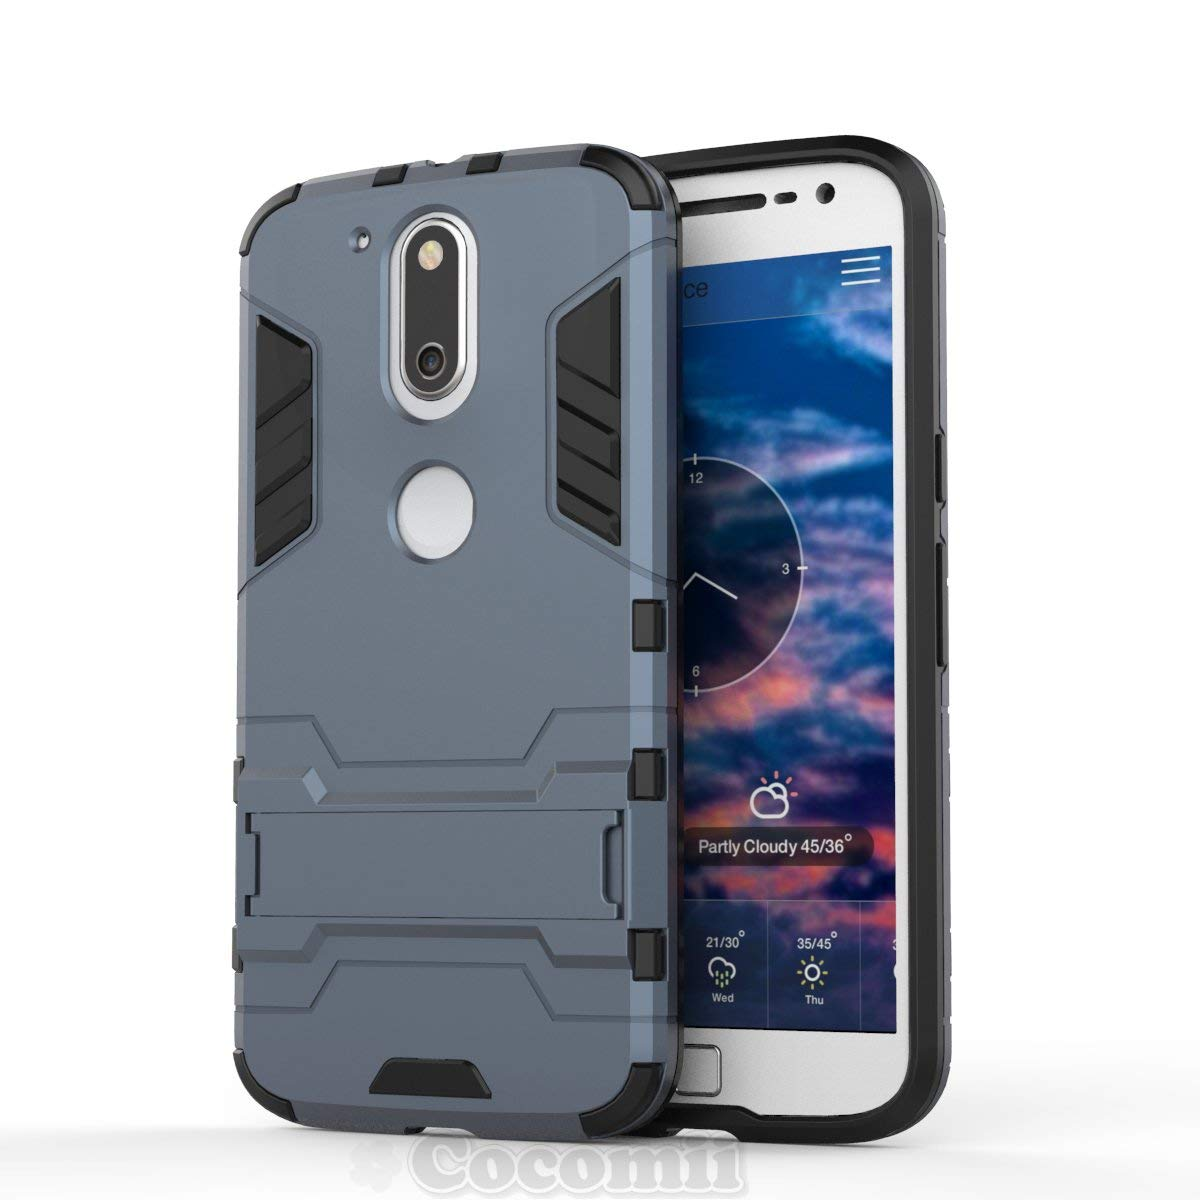 Cocomii Iron Man Armor Motorola Moto G4/G4 Plus Case NEW [Heavy Duty] Premium Tactical Grip Kickstand Shockproof Hard Bumper [Military Defender] Full ...